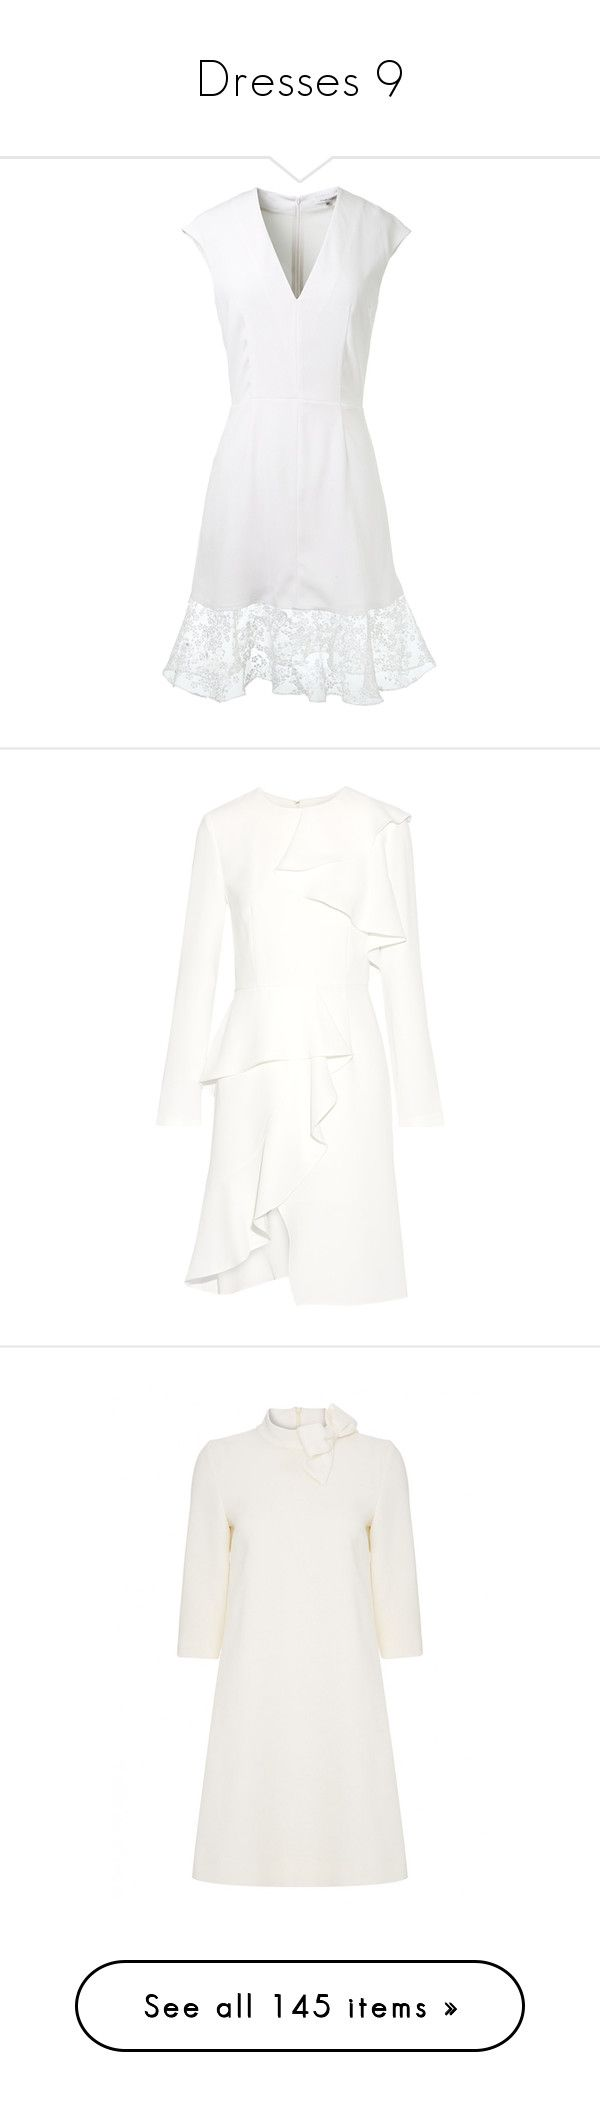 """""""Dresses 9"""" by royal-fashion ❤ liked on Polyvore featuring dresses, floral embroidered dress, white v neck dress, white see through dress, white sheer dress, sheer embroidered dress, ivory, ruffle dress, crepe dress and long sleeve dresses"""